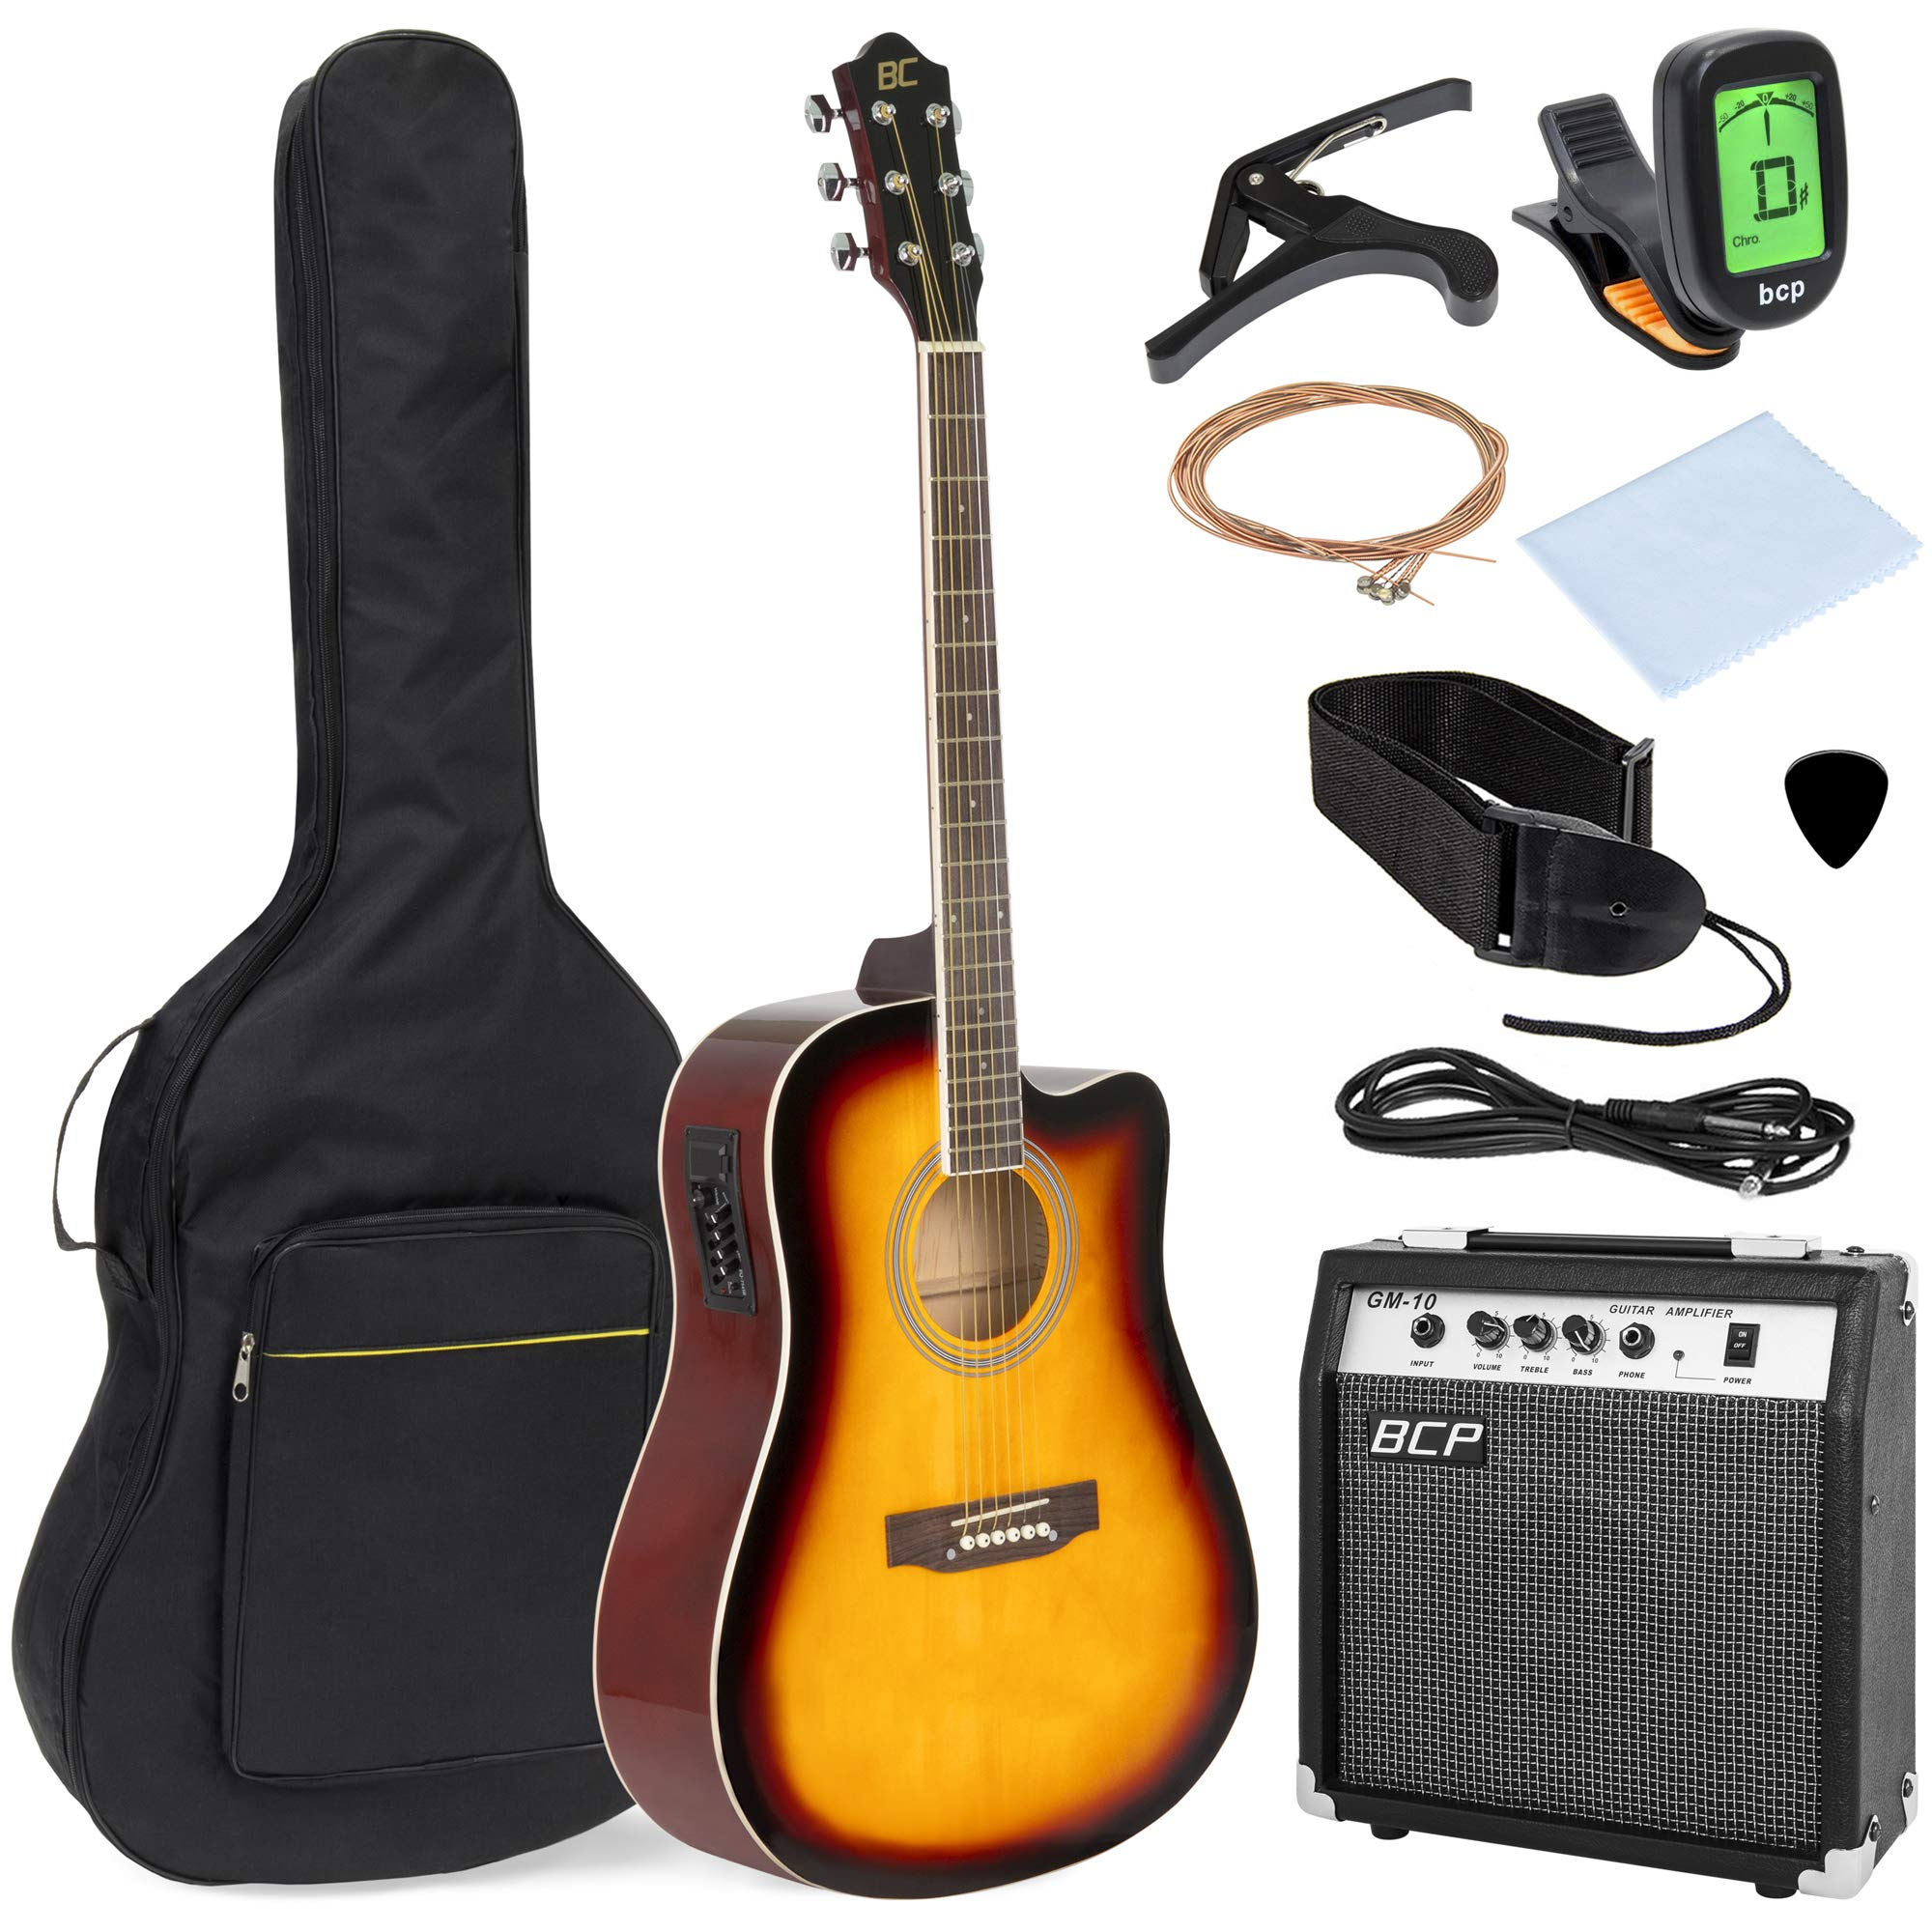 Best Choice Products 41in Full Size Acoustic Electric Cutaway Guitar Set w/ 10-Watt Amplifier, Capo, E-Tuner, Gig Bag, Strap, Picks (Sunburst) by Best Choice Products